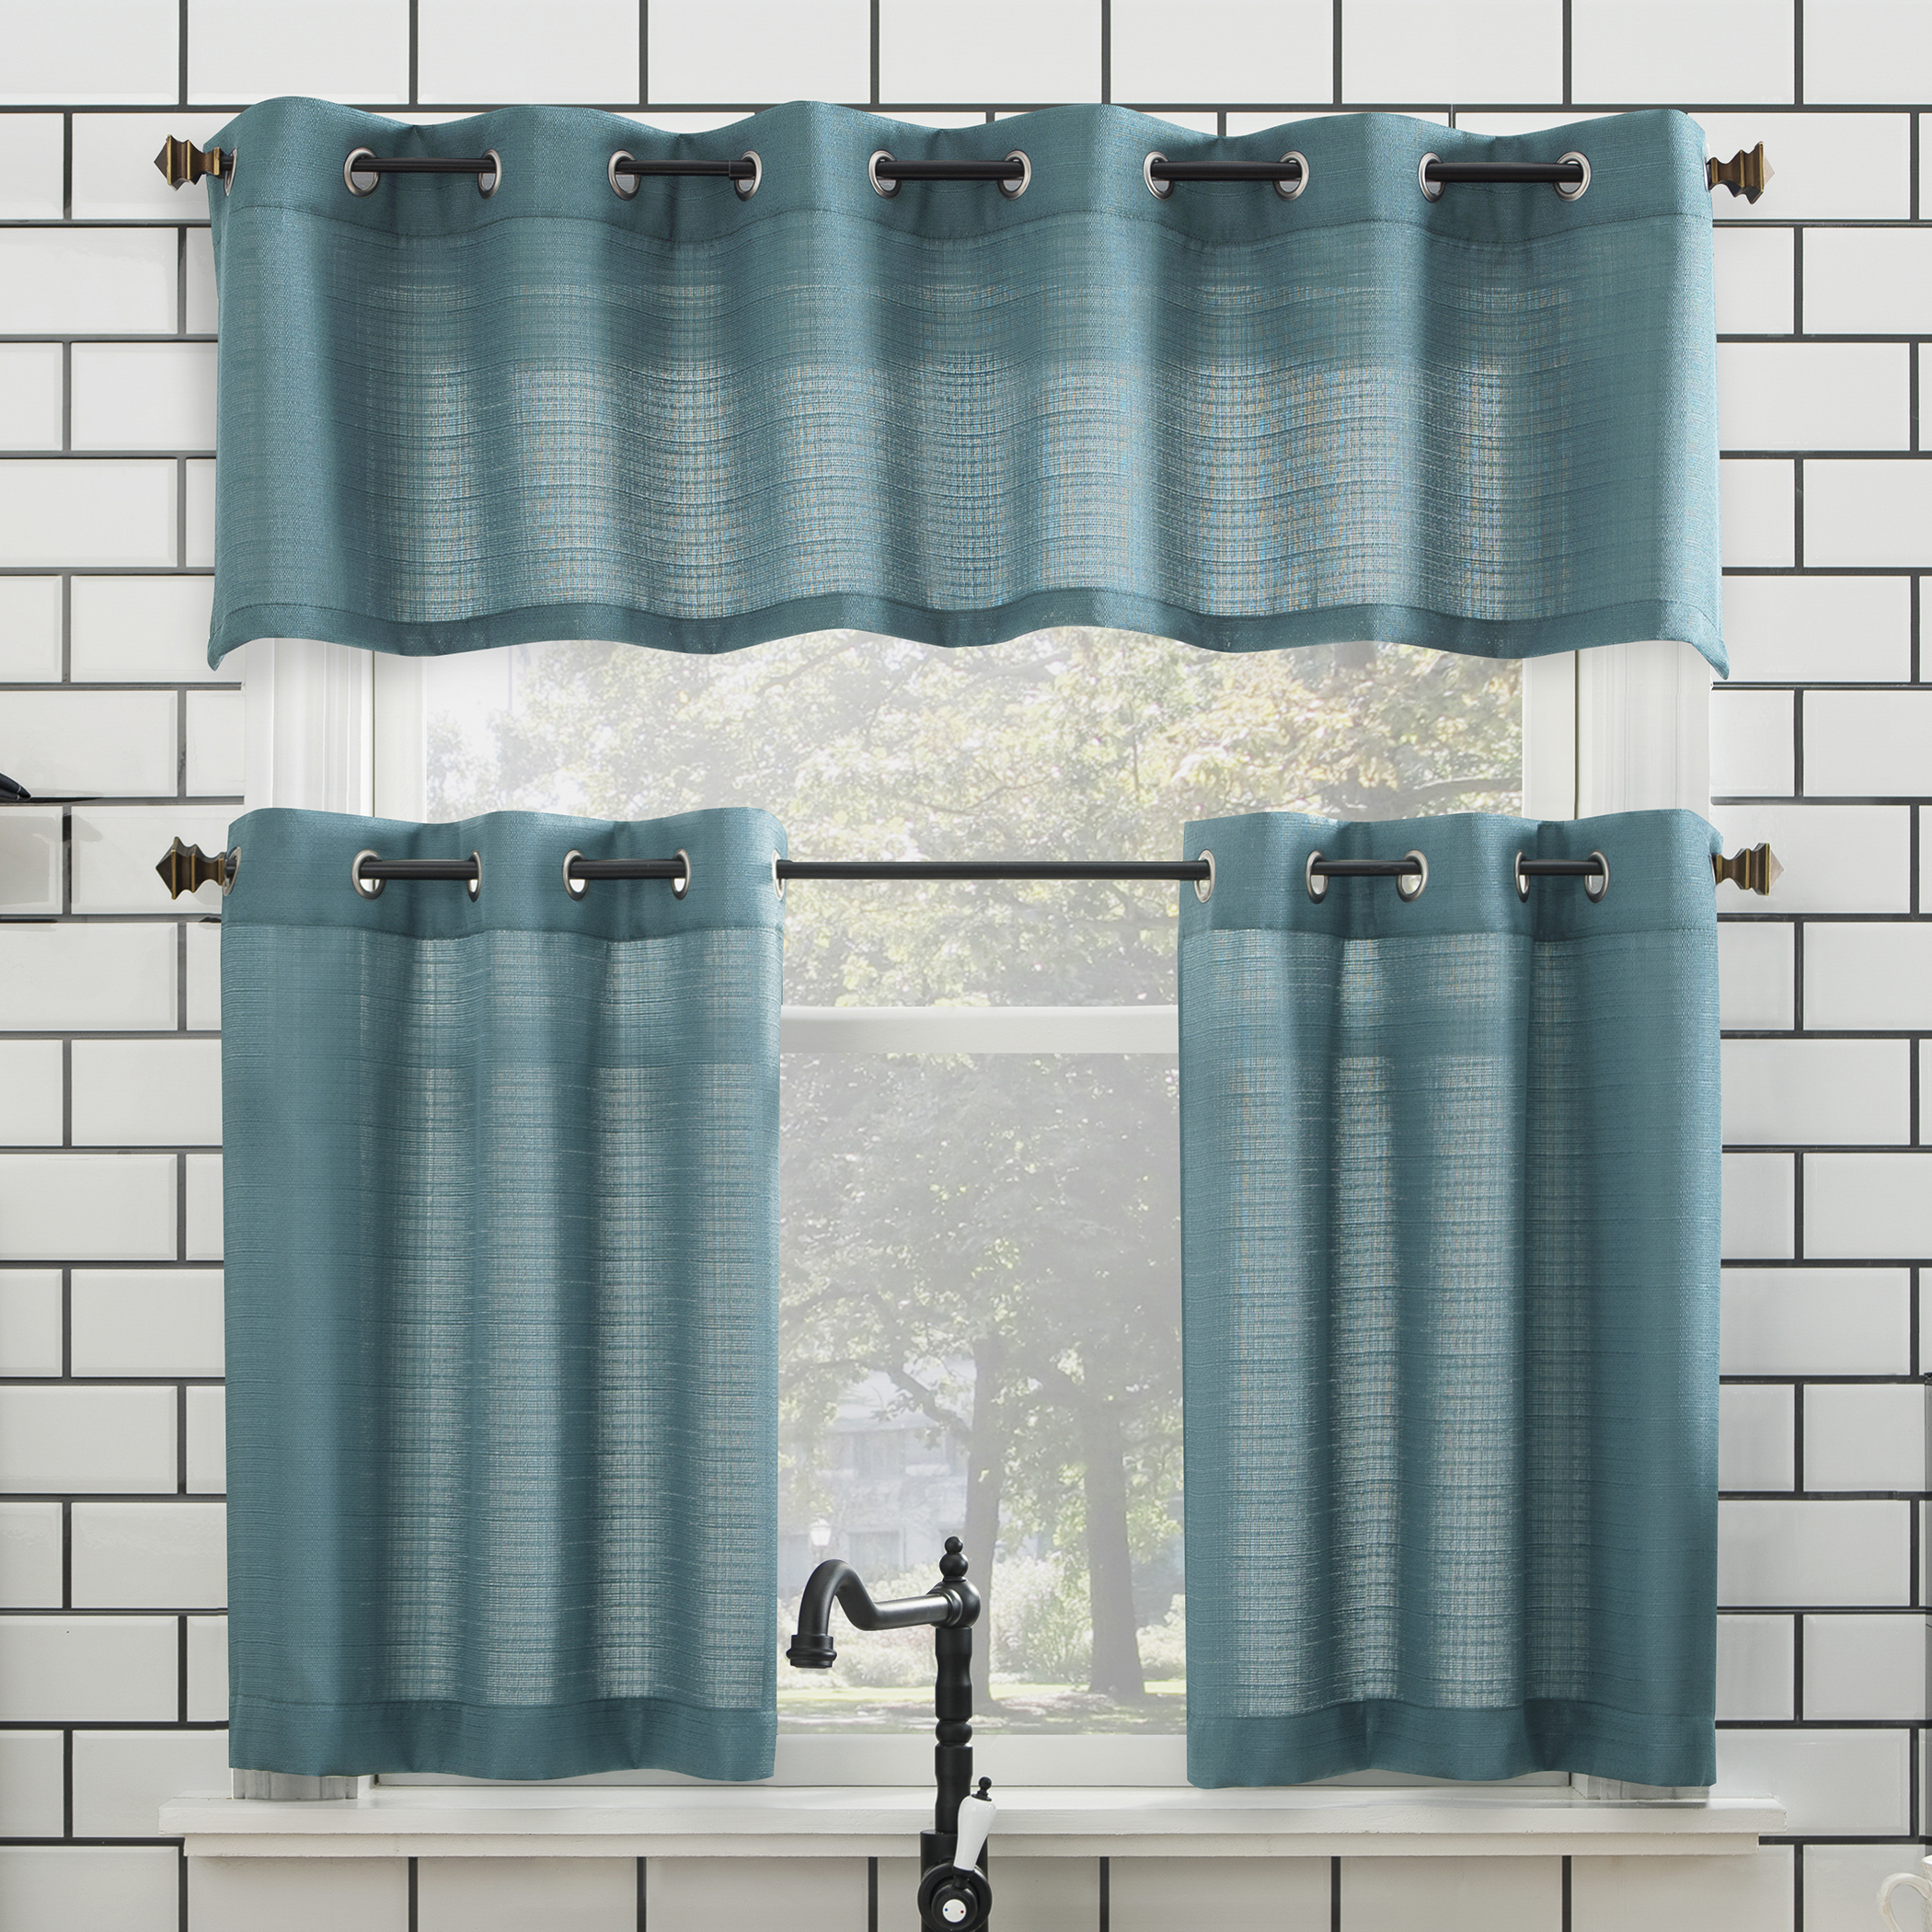 Mainstays Solid Grommet 3 Piece Kitchen Curtain Tier And Valance Set Pertaining To Geometric Print Microfiber 3 Piece Kitchen Curtain Valance And Tiers Sets (View 7 of 20)